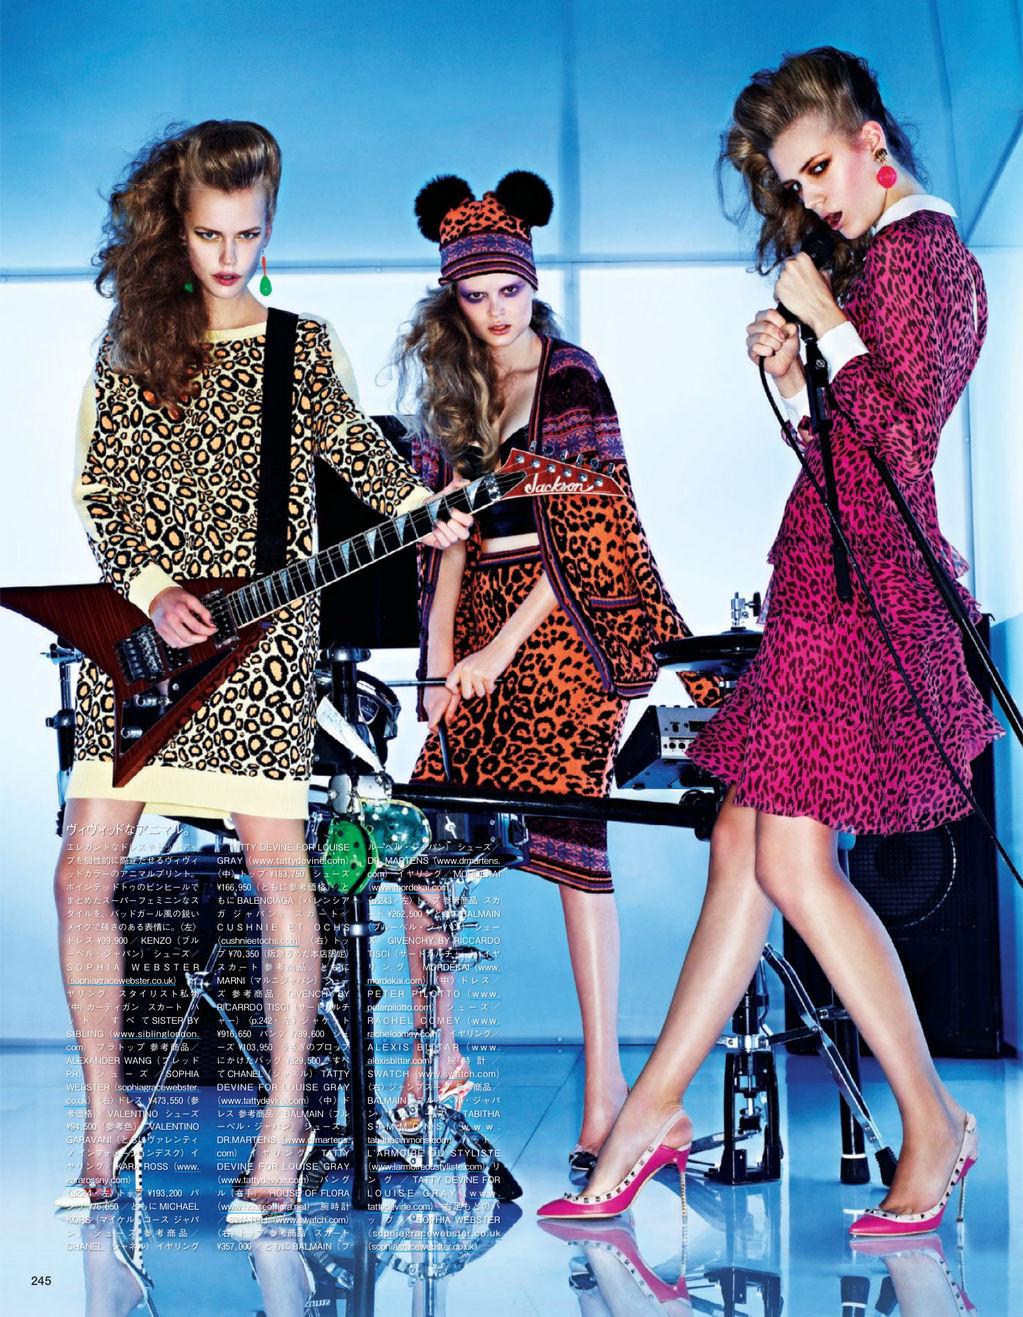 Giovanna-Battaglia-2-Girls-in-the-Band-Vogue-Japan-Sharif-Hamza.jpg